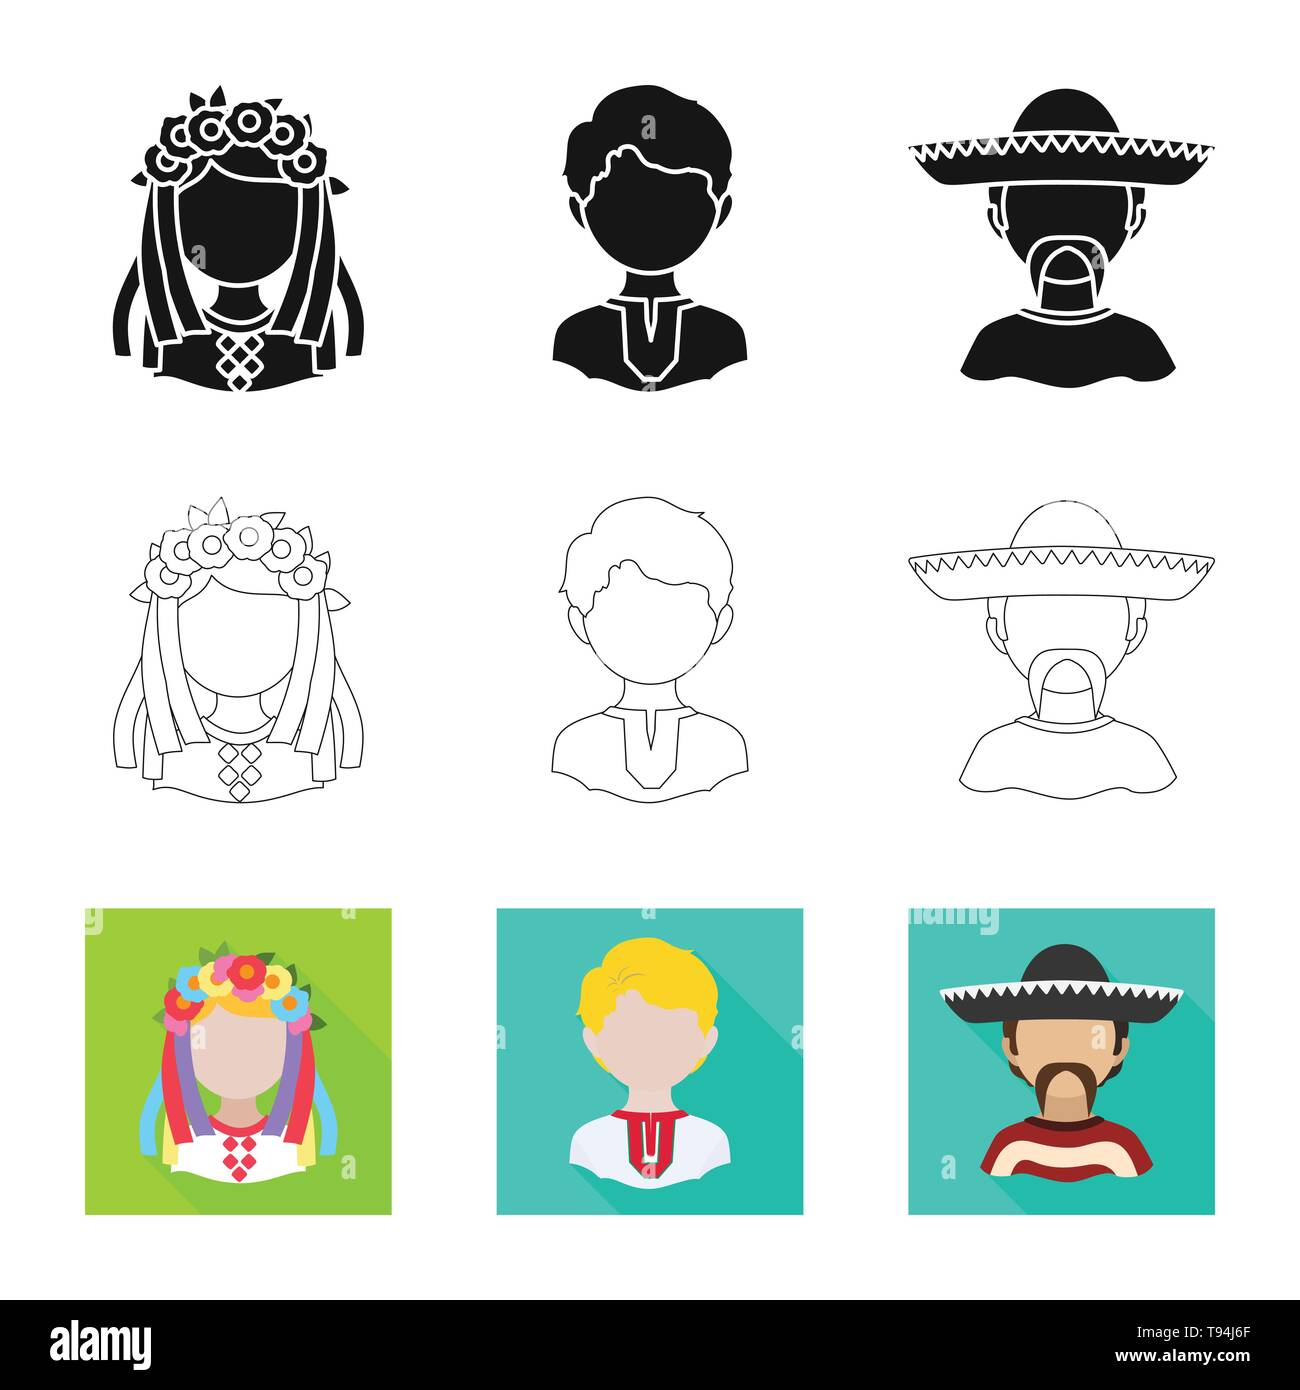 Isolated object of imitator and resident logo. Set of imitator and culture stock vector illustration. - Stock Image